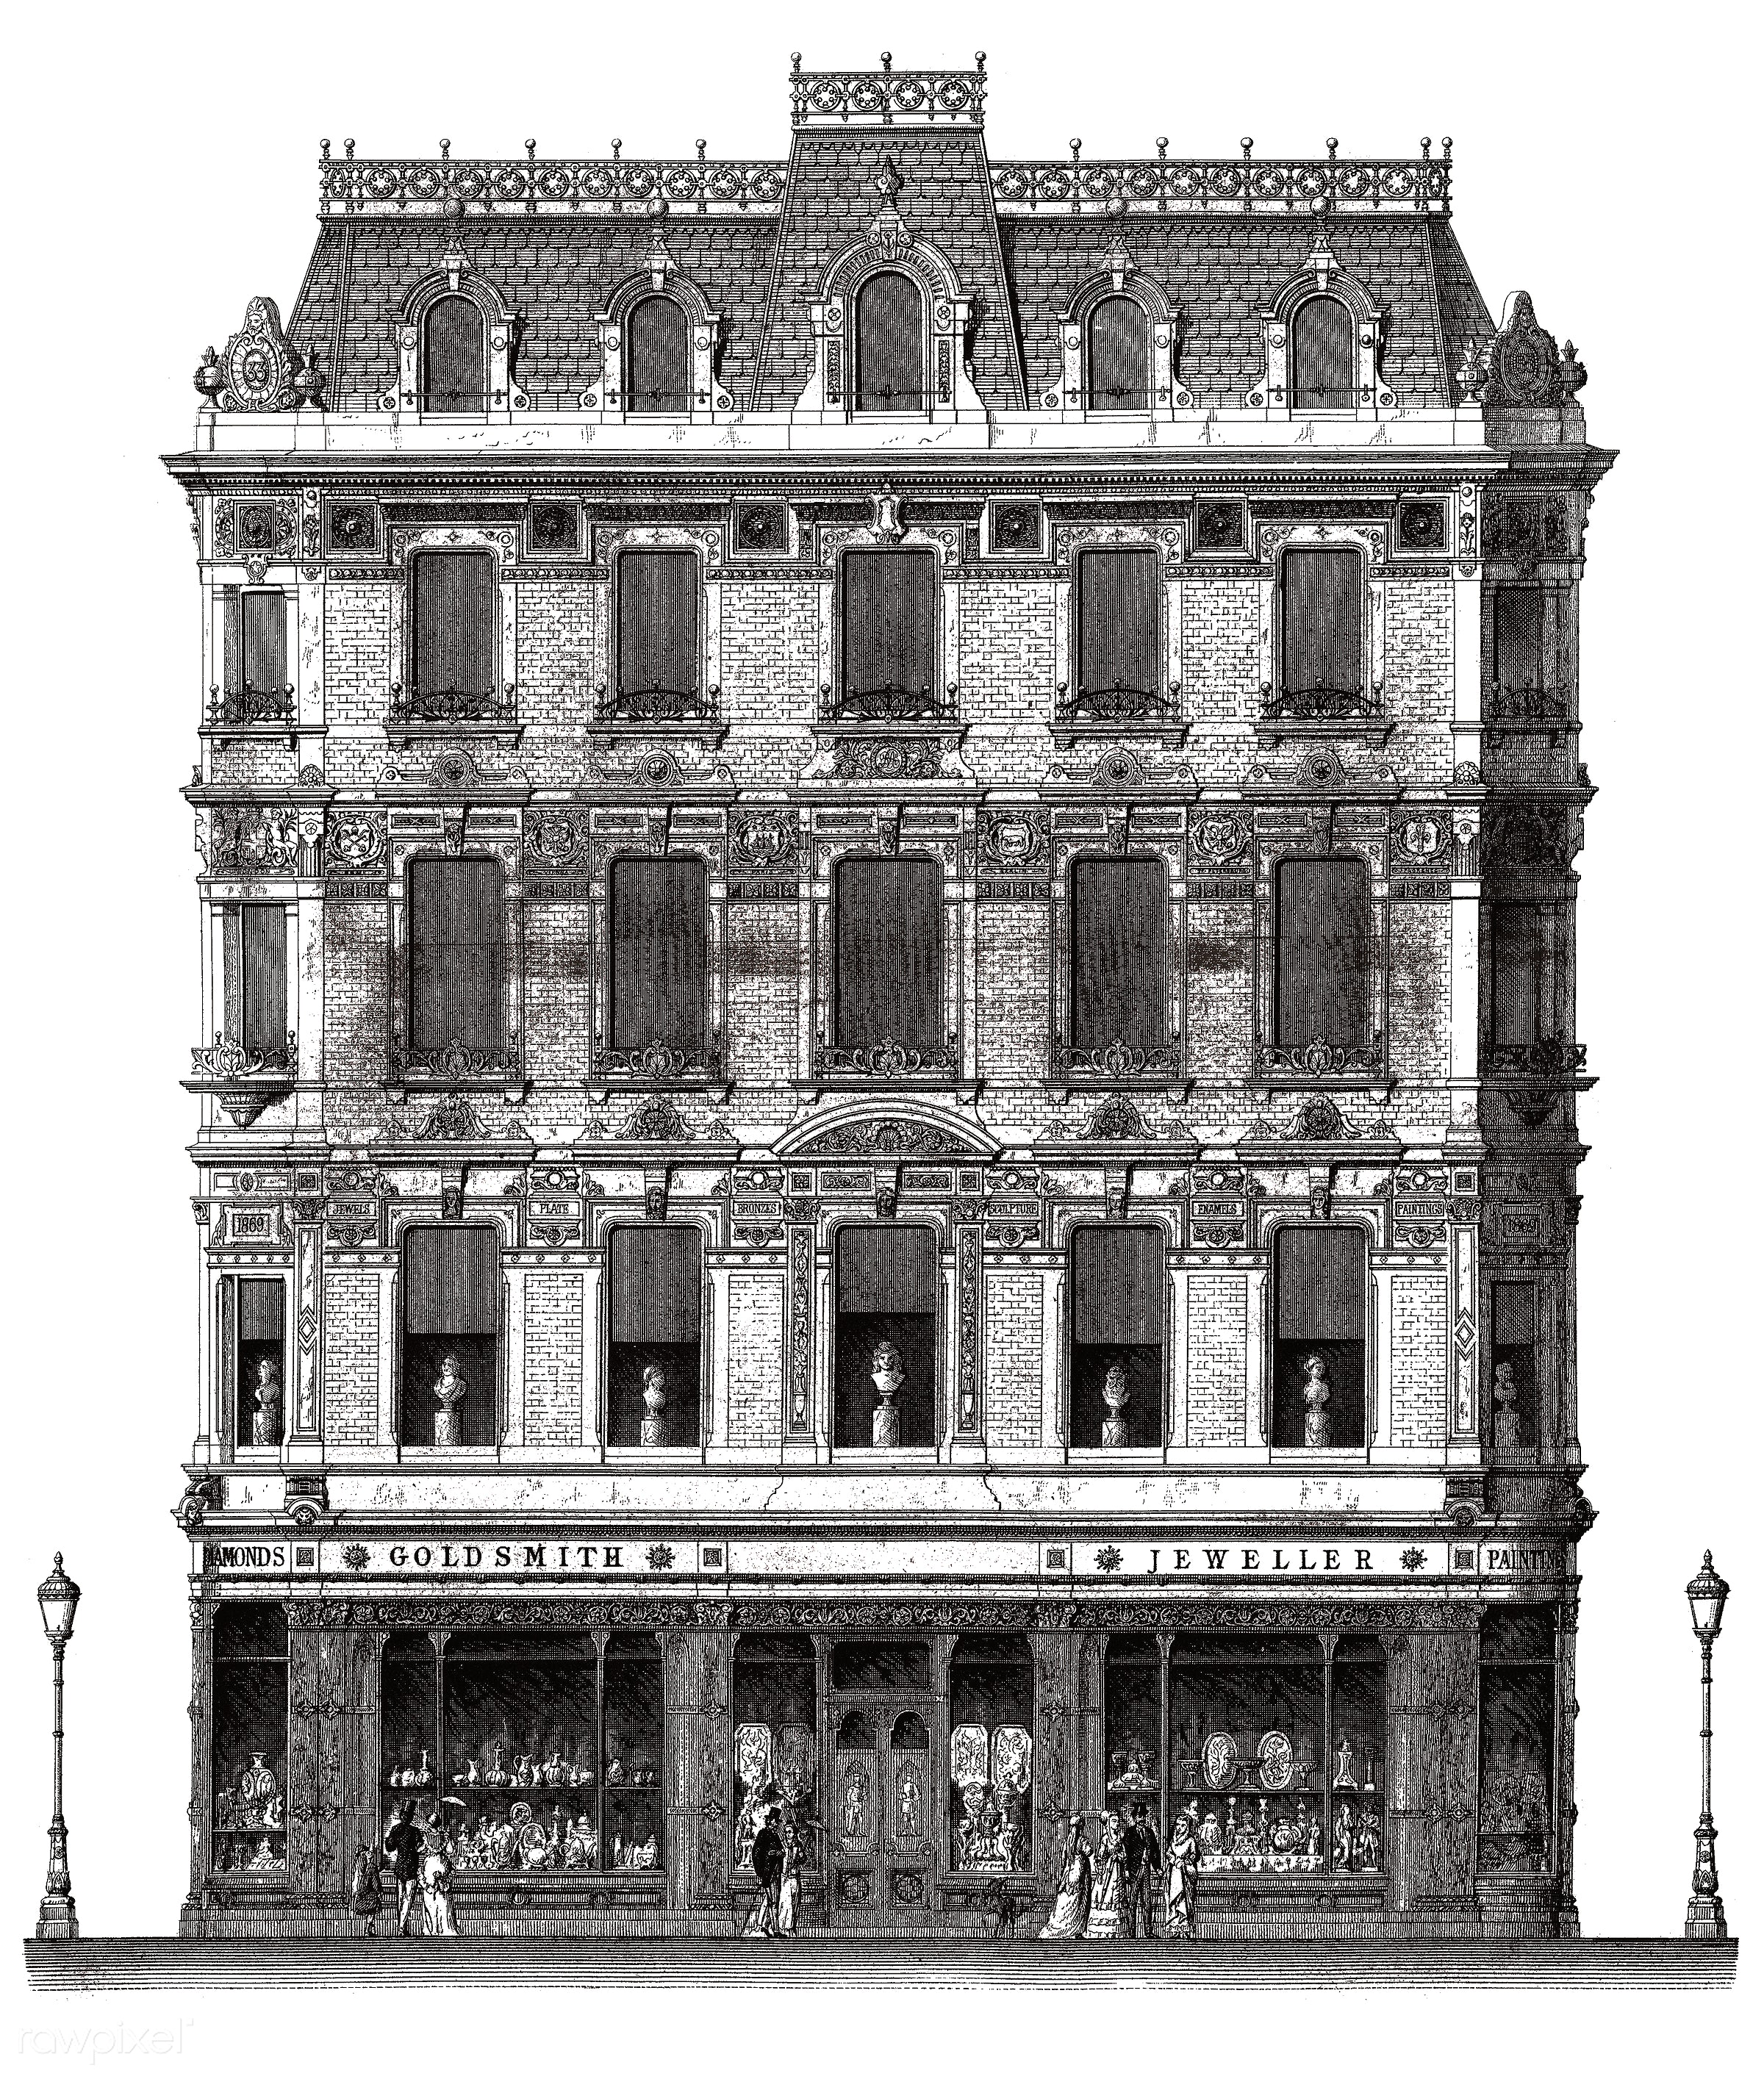 Vintage illustration of Architecture in Piccadilly published in 1870 by Arthur Cates (1829-1901). - london, antique,...